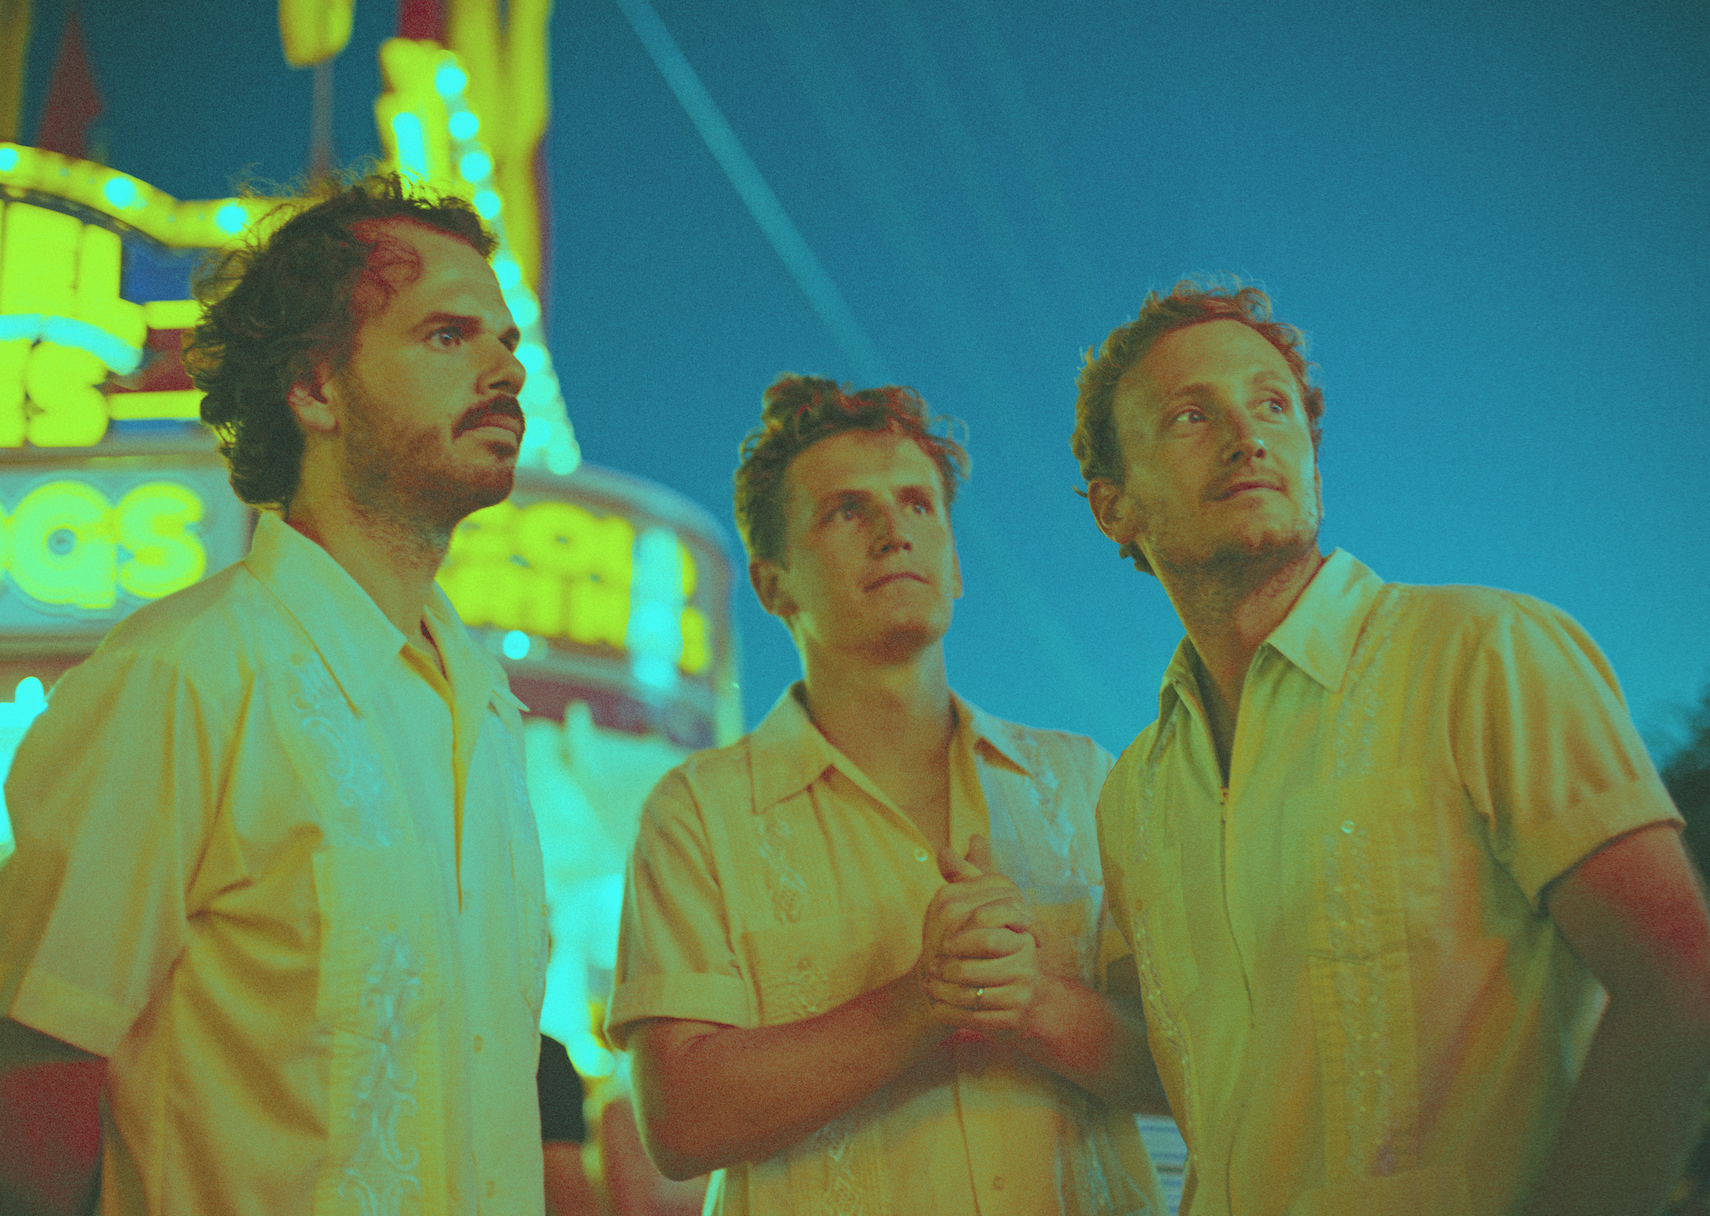 """PREMIERE: Coyote Choir embrace happiness in """"Kingdom of Love"""" video"""